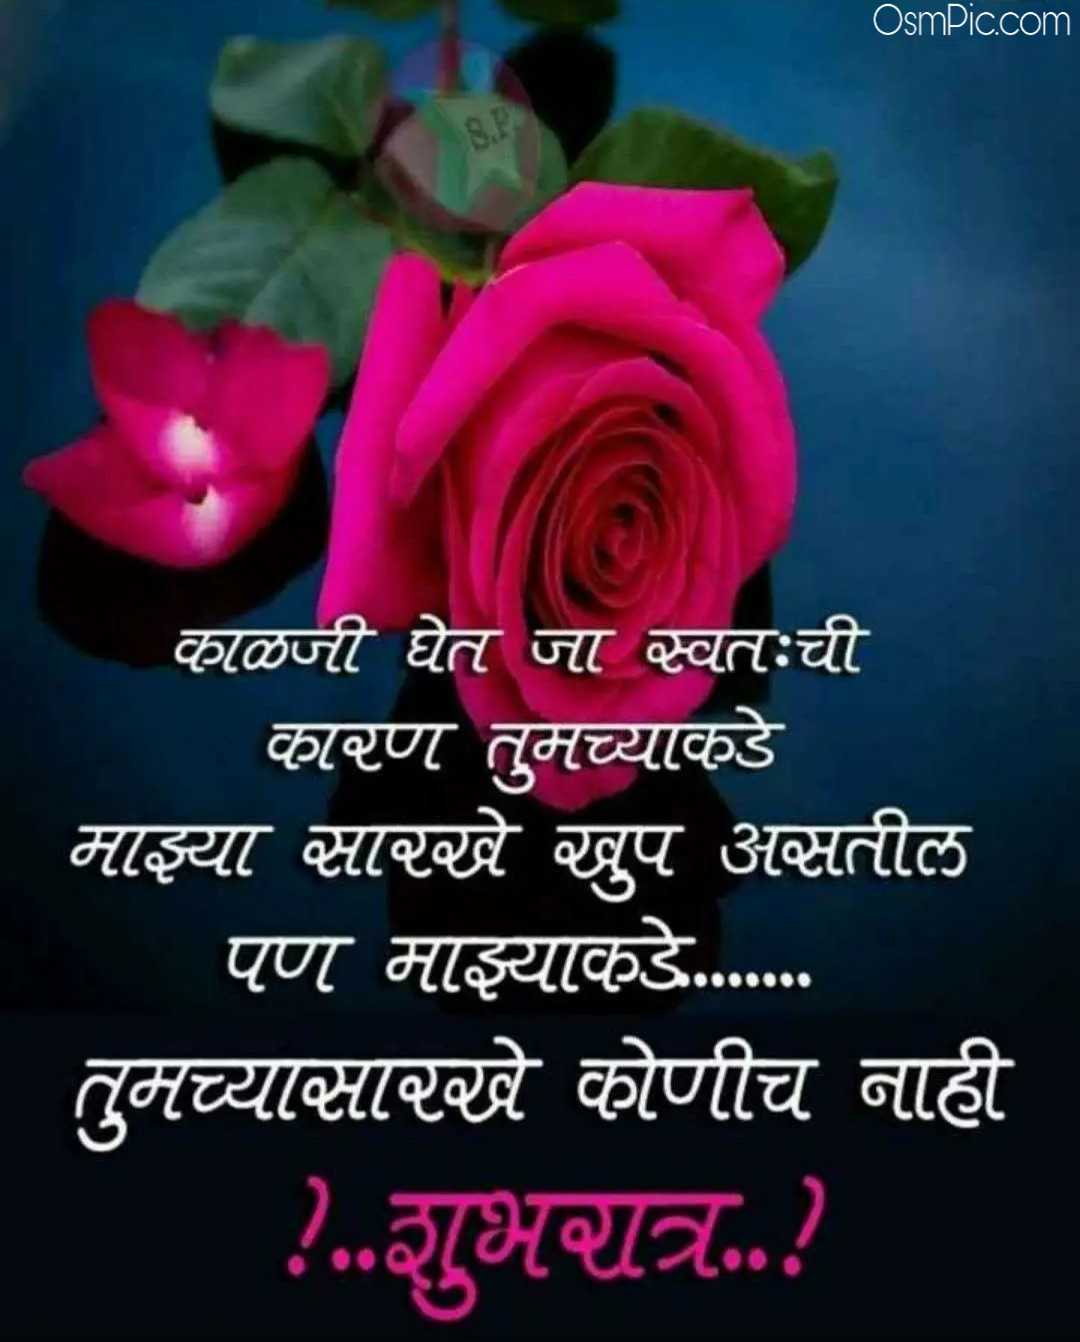 New Good Night Marathi Images Pictures Status Messages For Whatsapp